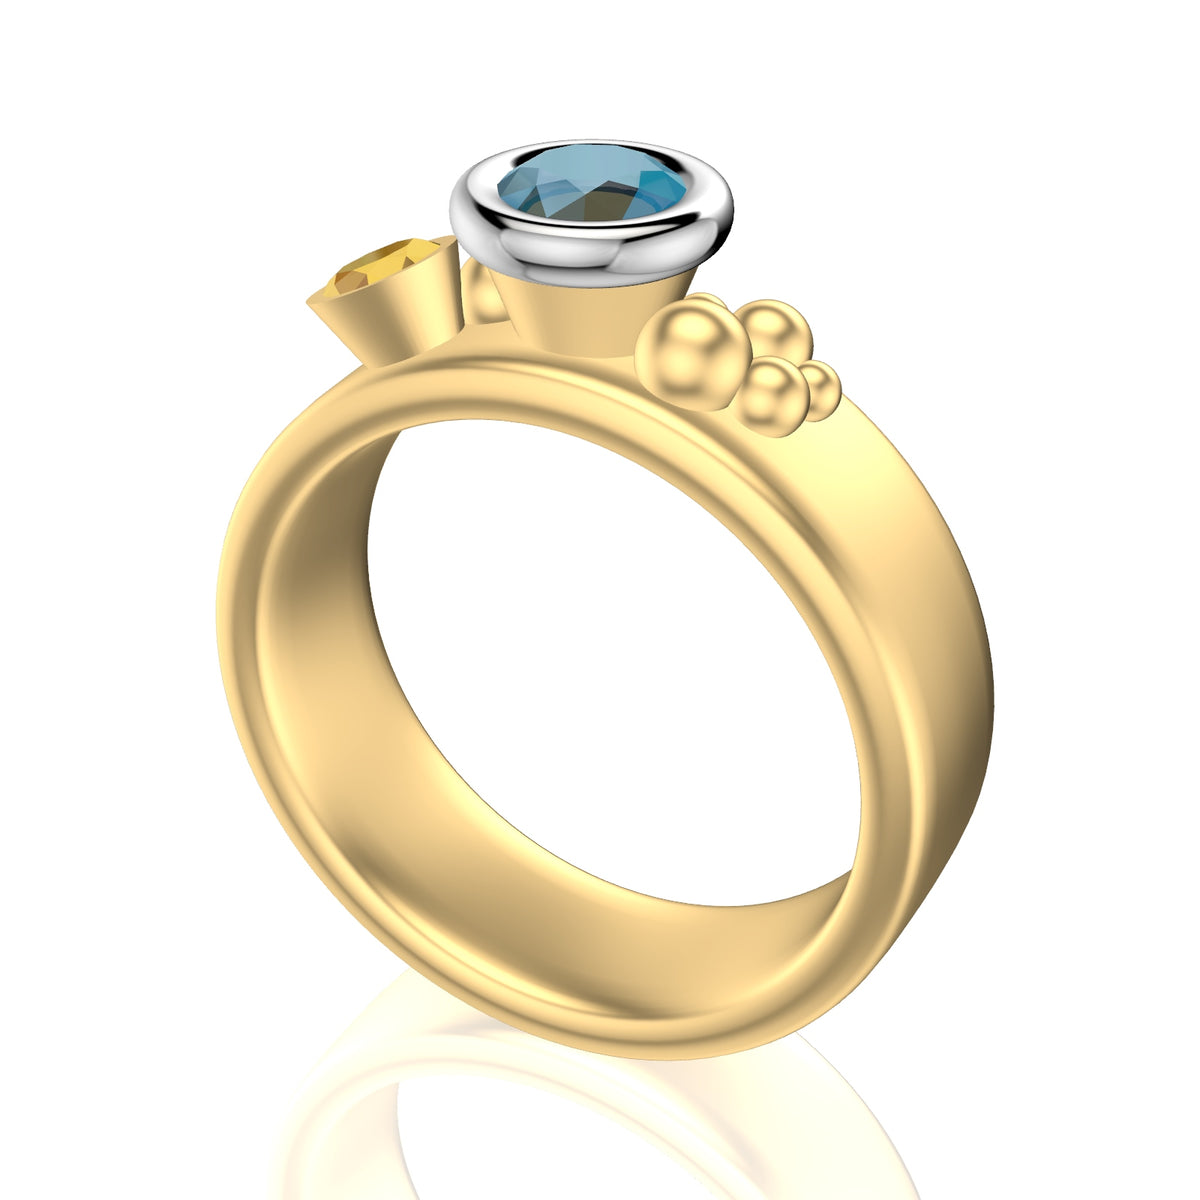 Sea Shore Shaped Stacker Ring | Yellow And White Gold 6mm Wide Flat Band | With A Blue Zircon, Tanzanite Or Yellow Sapphire Accent Stone And Little Diamonds